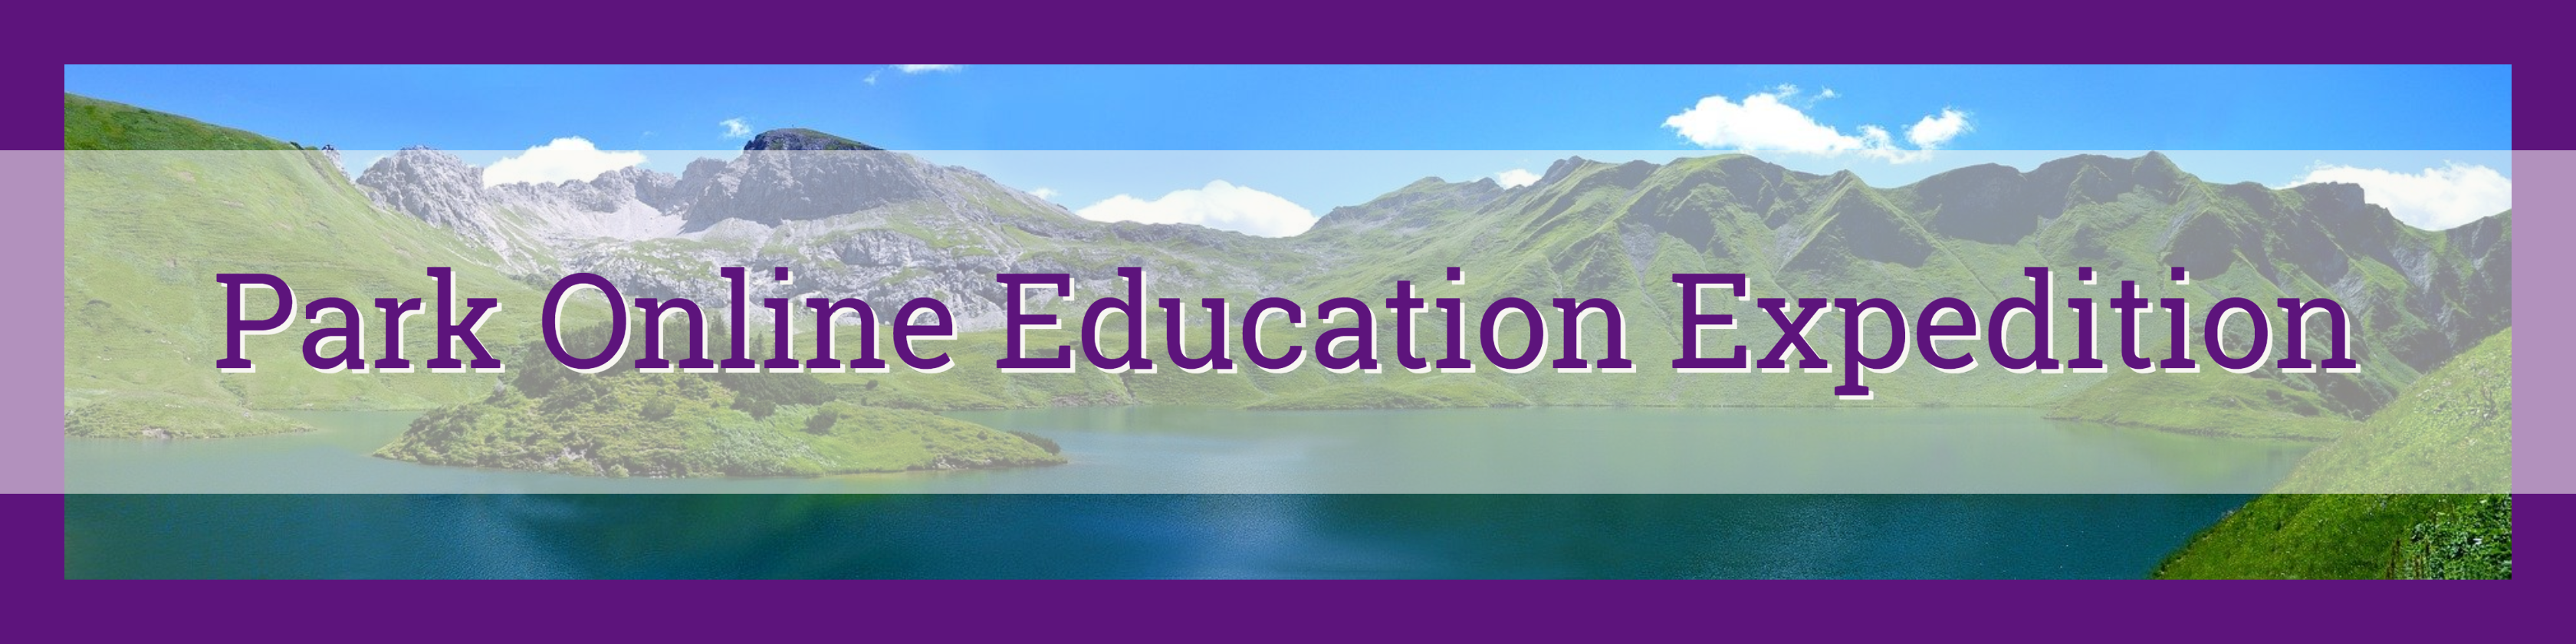 Park Online Education Expedition